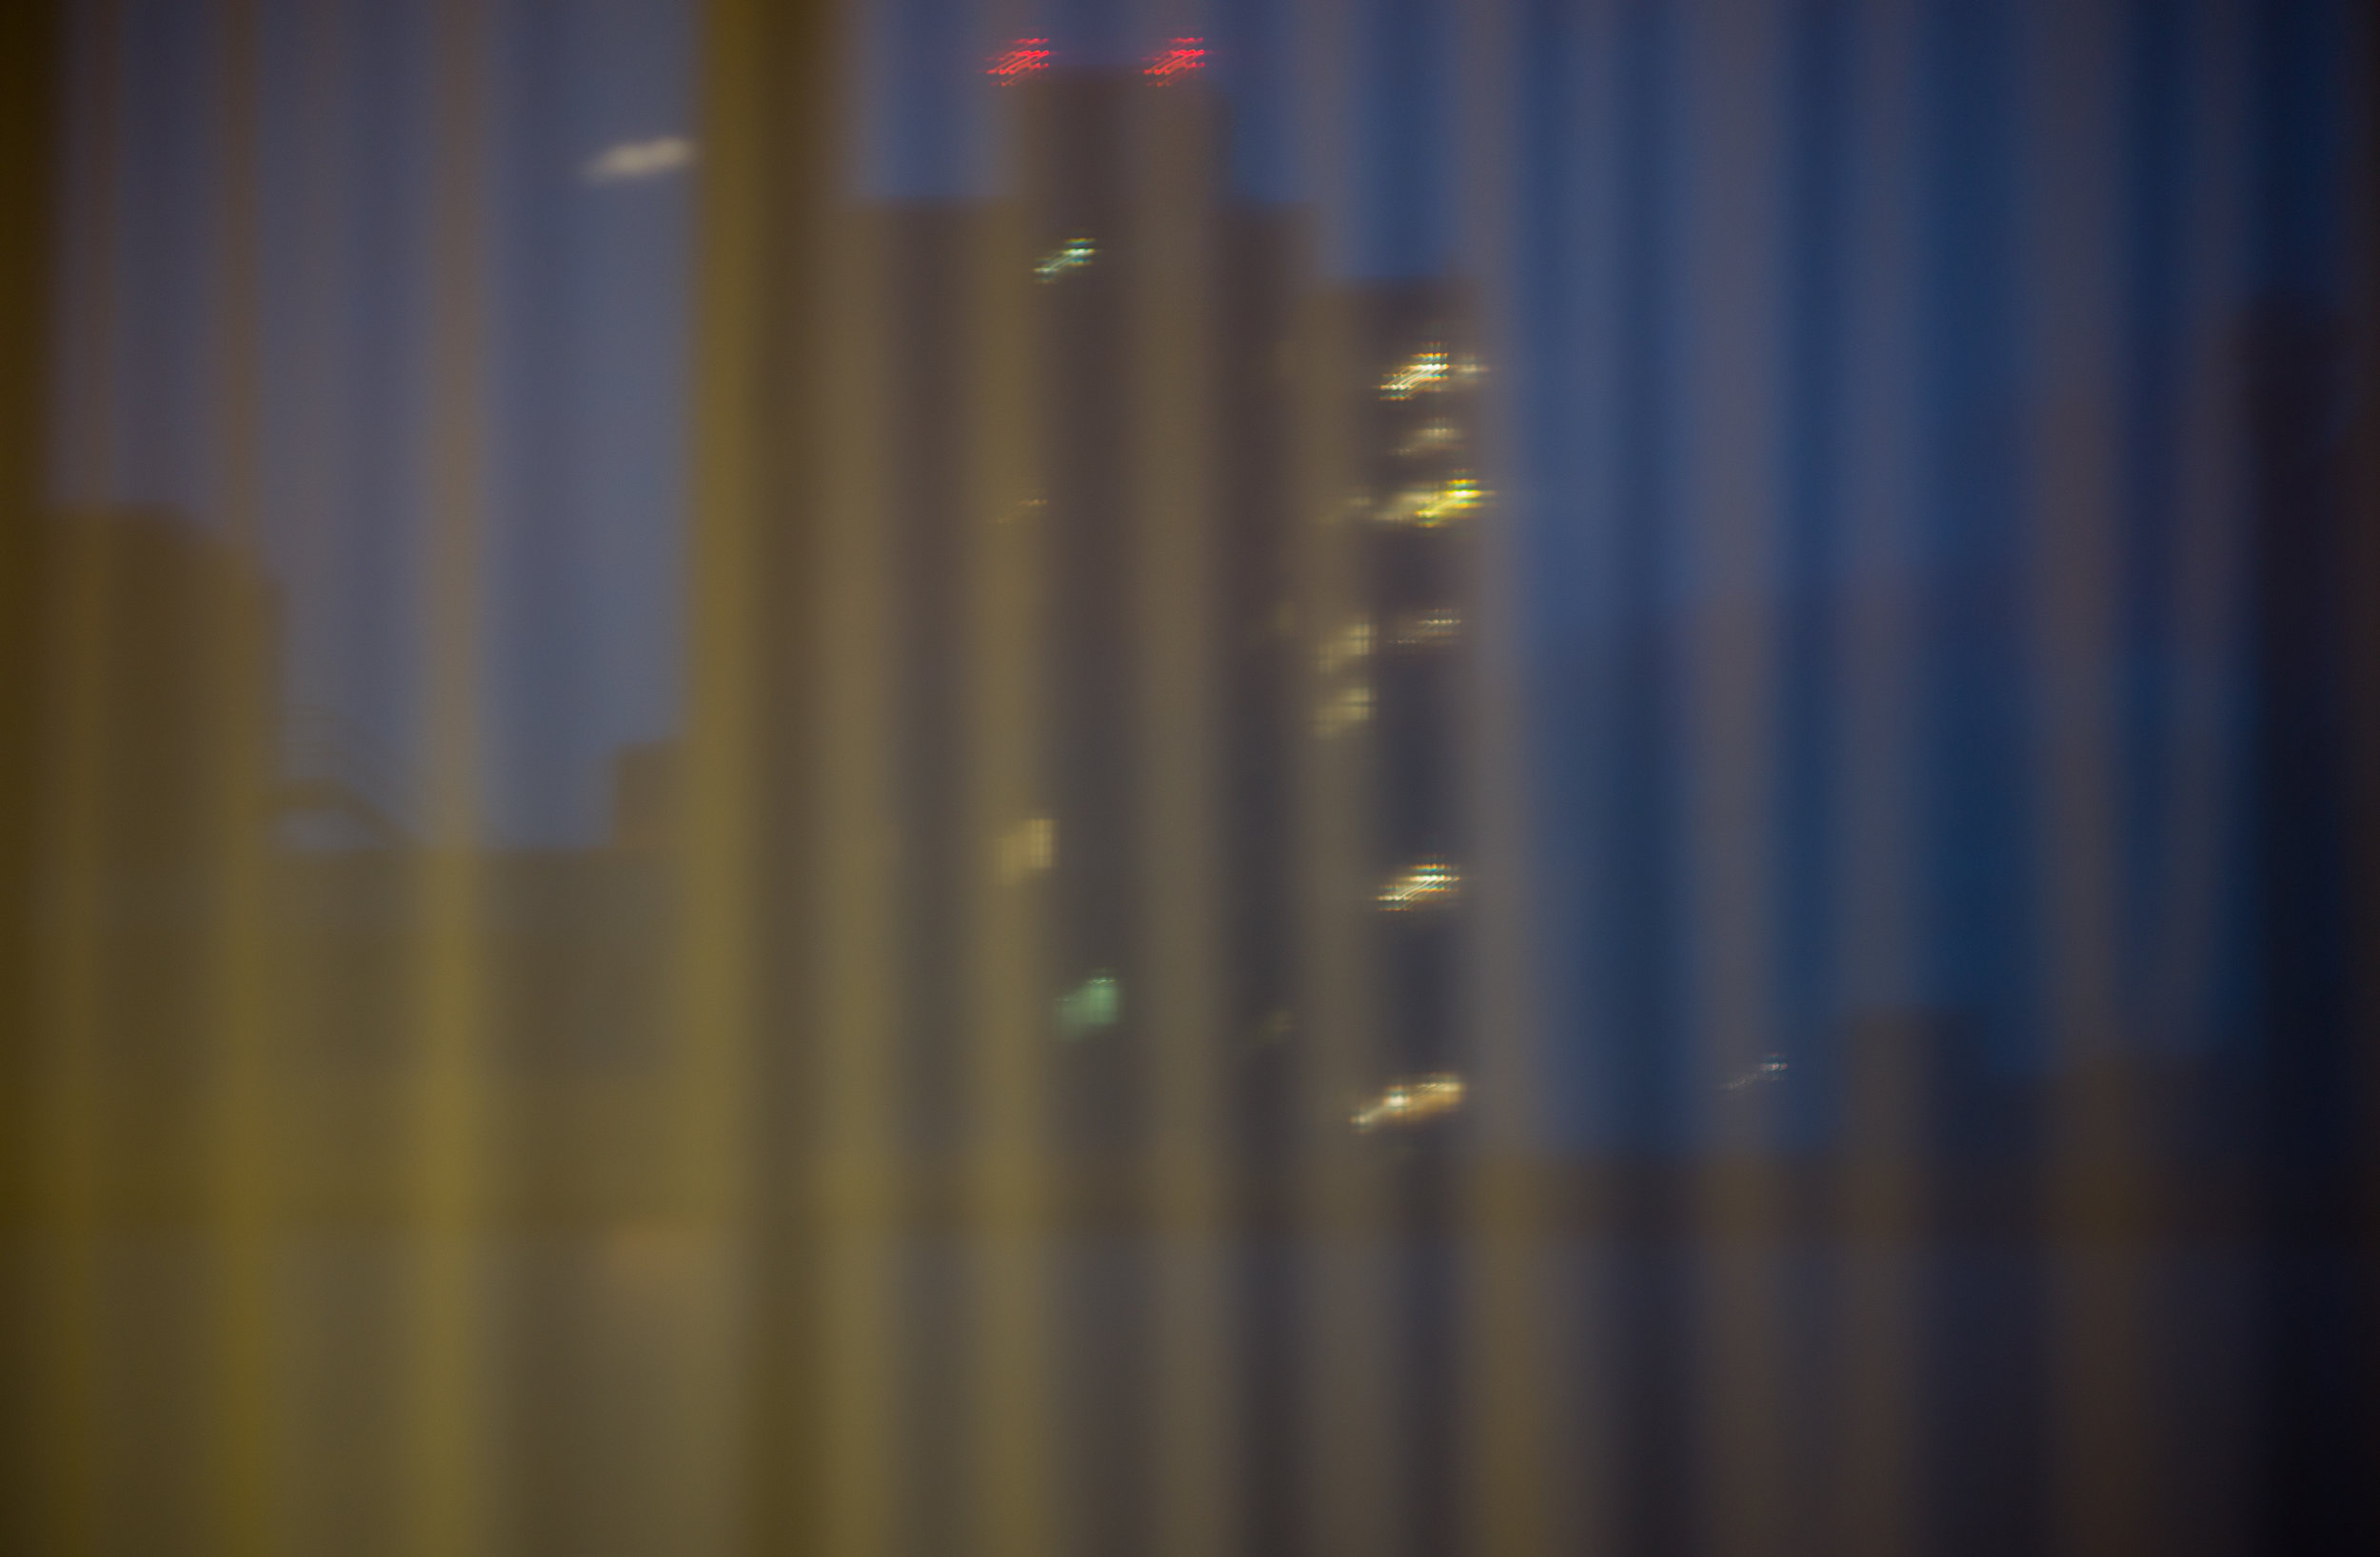 Cityscape through Fabric, Night